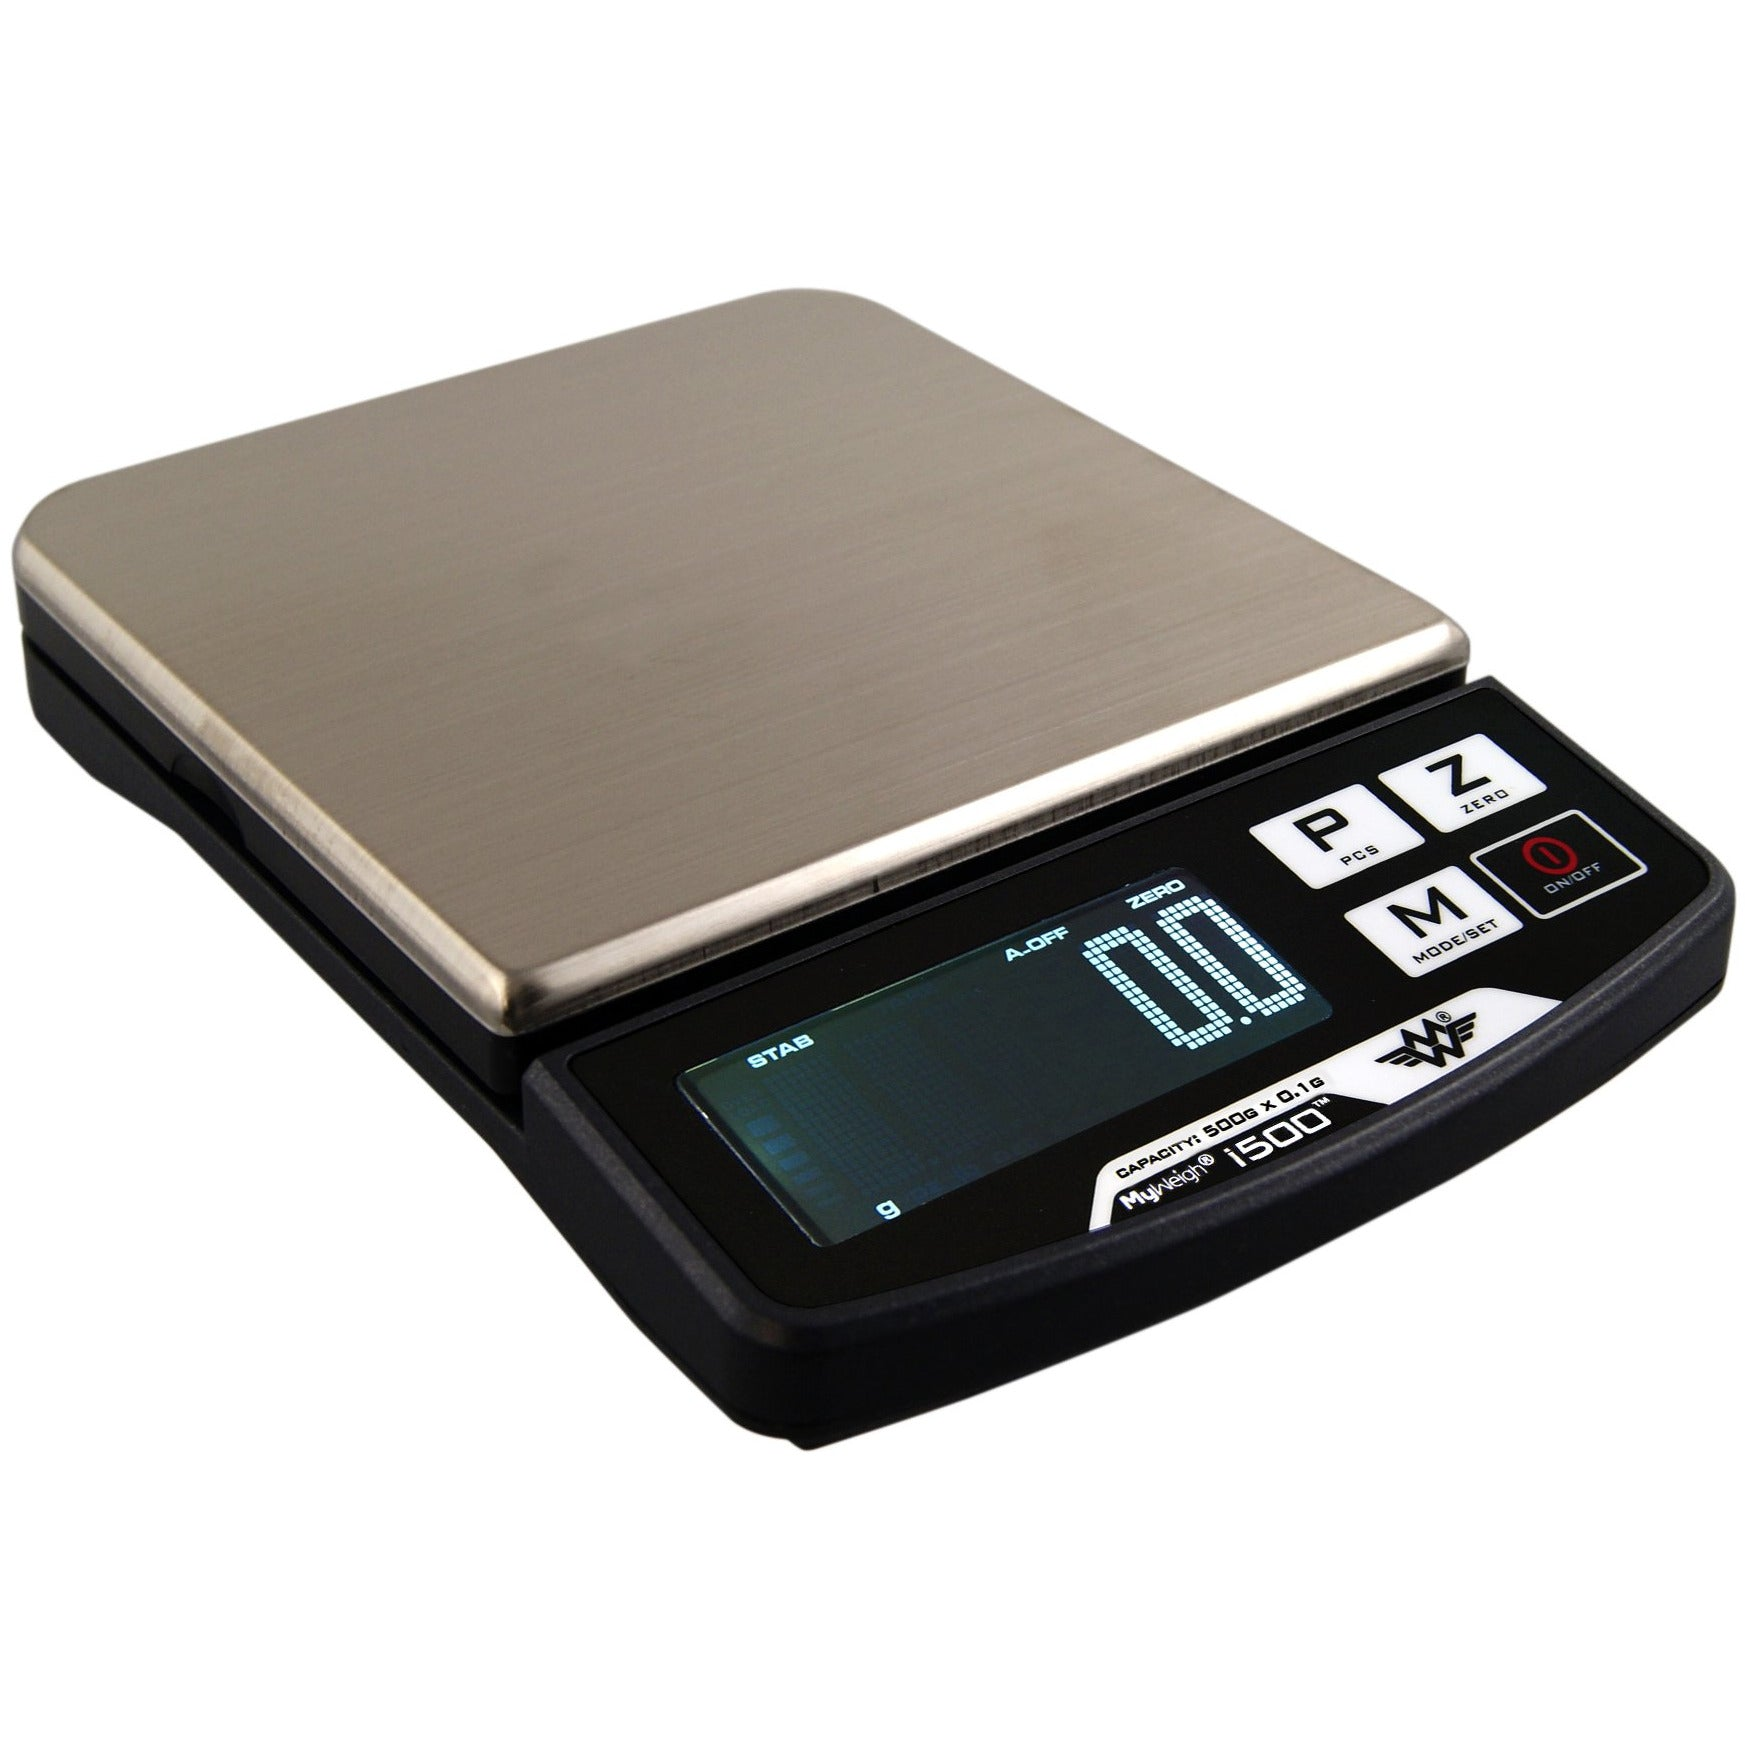 IB-500 My Weigh iBalance 500 500g x 0.1g